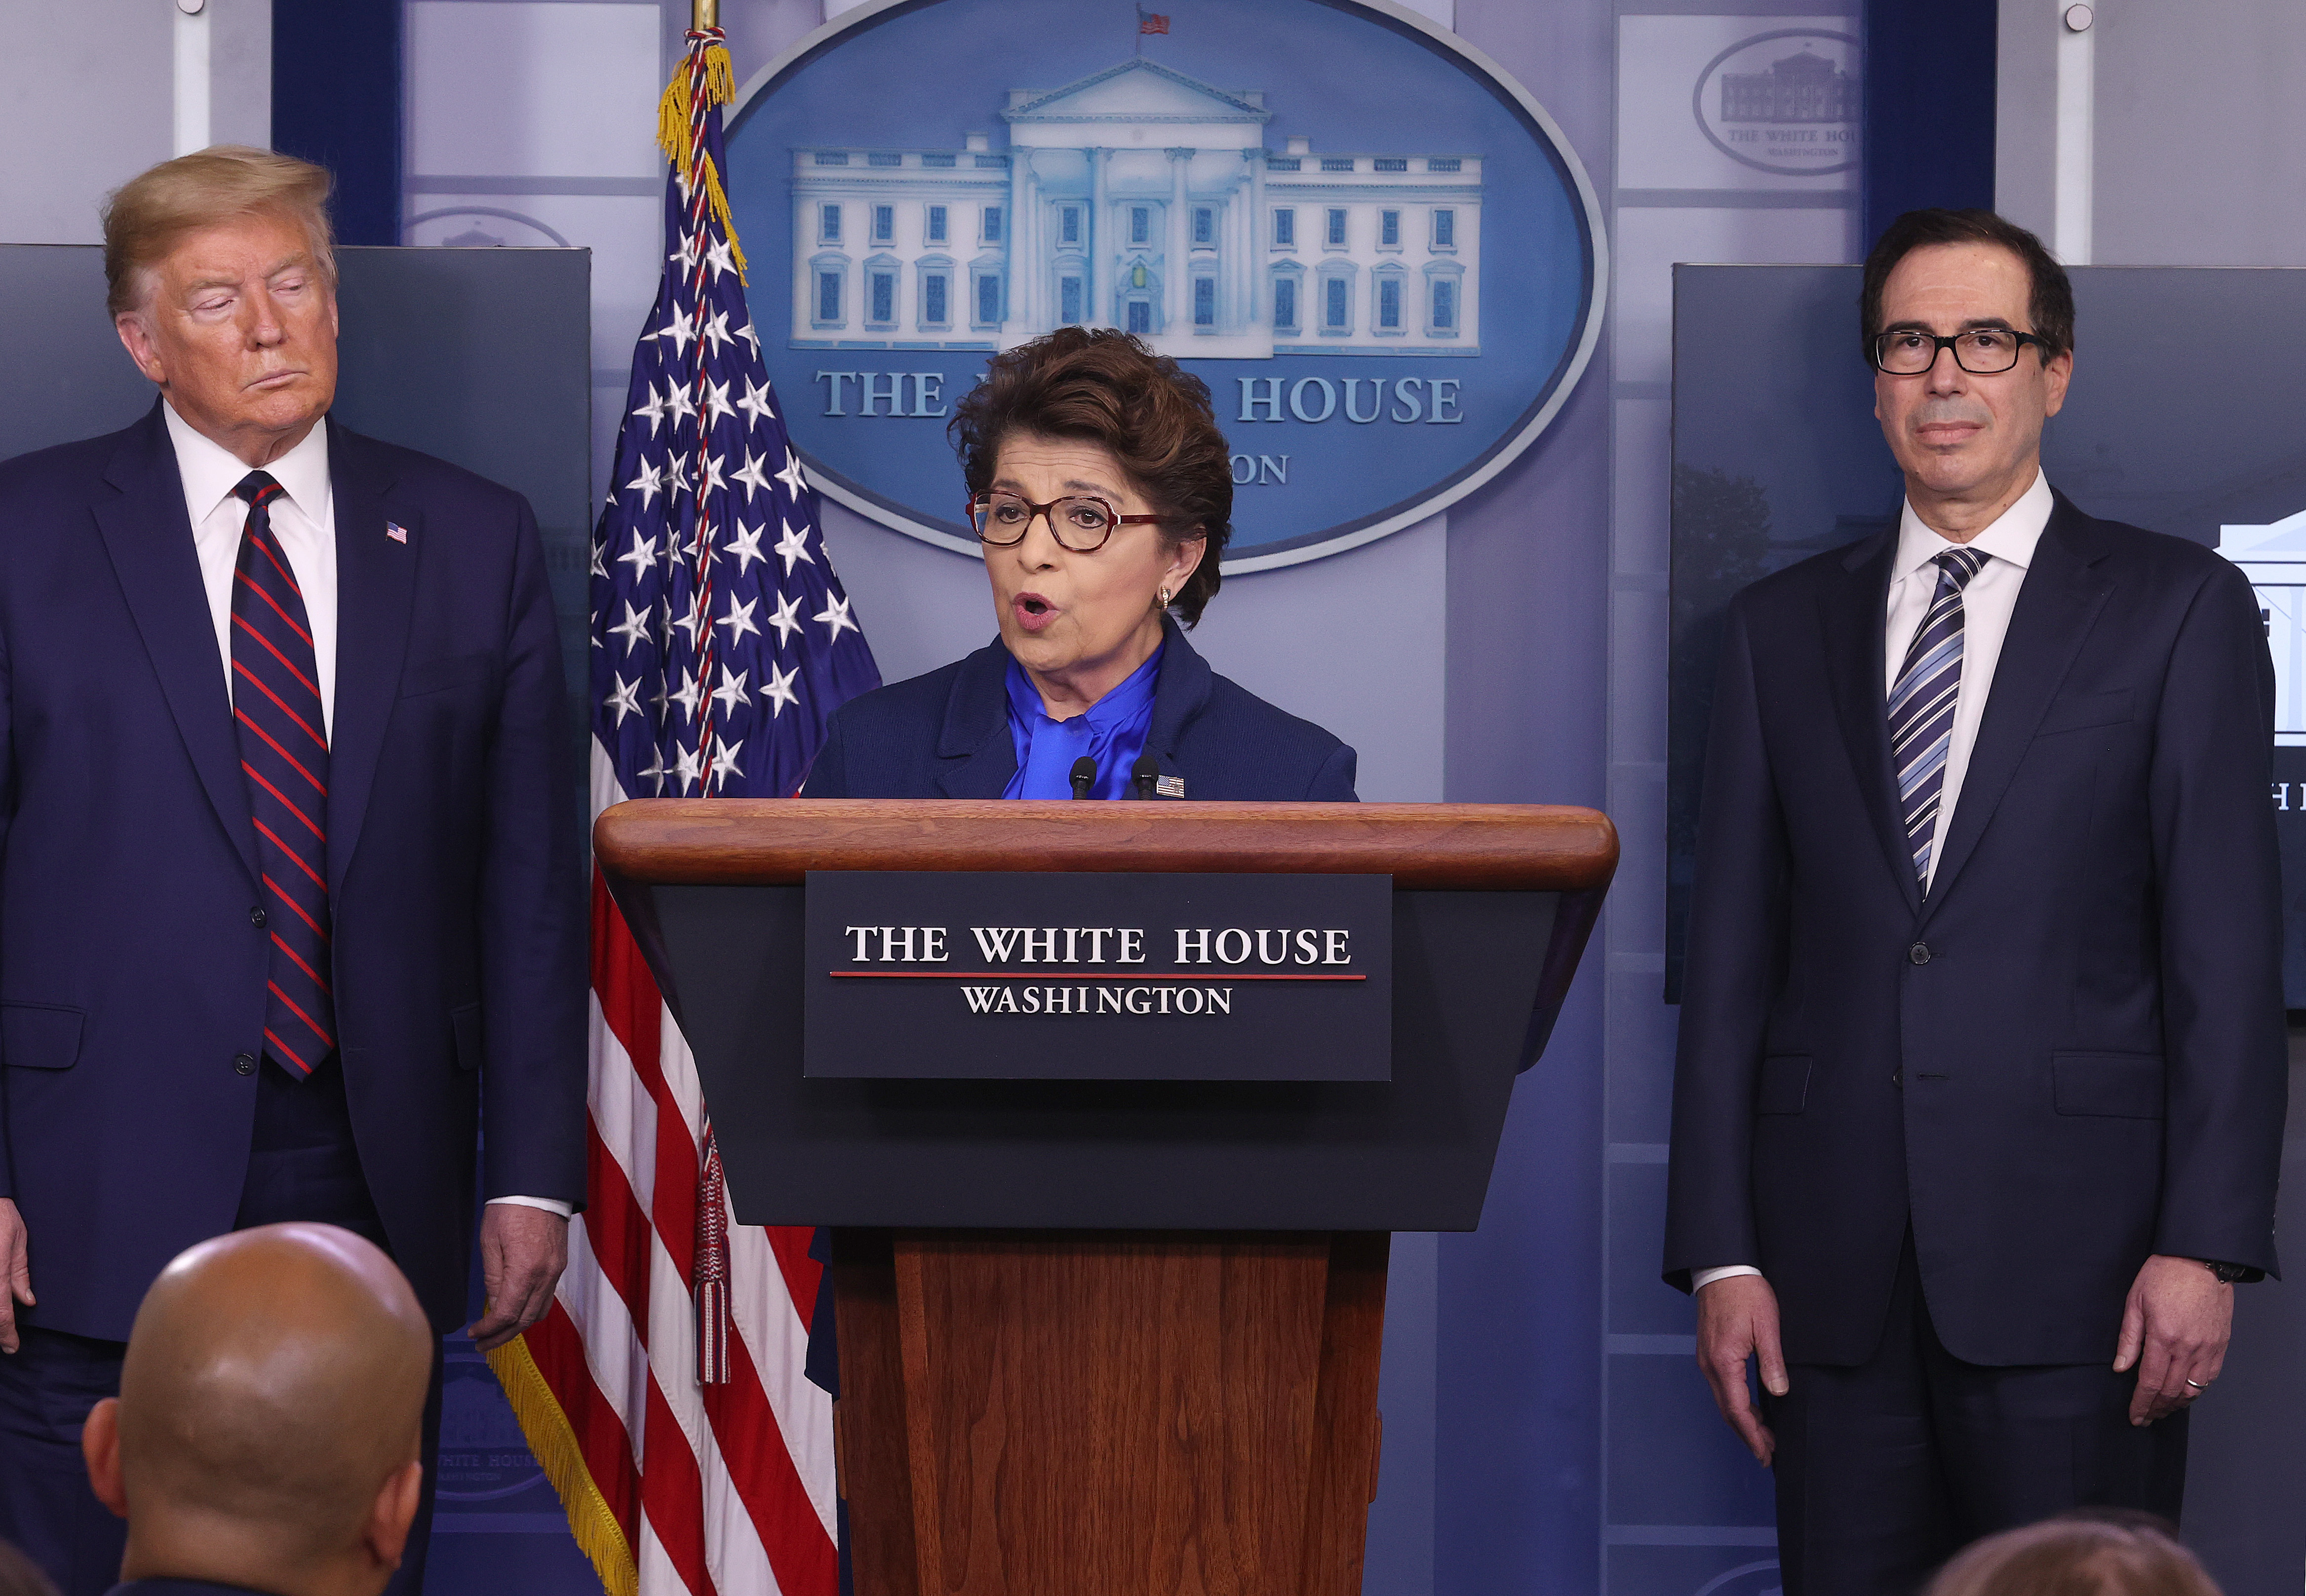 WASHINGTON, DC - APRIL 02: Small Business Administrator, Jovita Carranza speaks while flanked by U.S. President Donald Trump and Secretary of Treasury Steve Mnuchin (R) in the press briefing room with members of the White House Coronavirus Task Force April 2, 2020 in Washington, DC. The U.S. government reported an unprecedented 6.6 million jobless claims this morning as a result of the coronavirus outbreak. (Photo by Win McNamee/Getty Images)